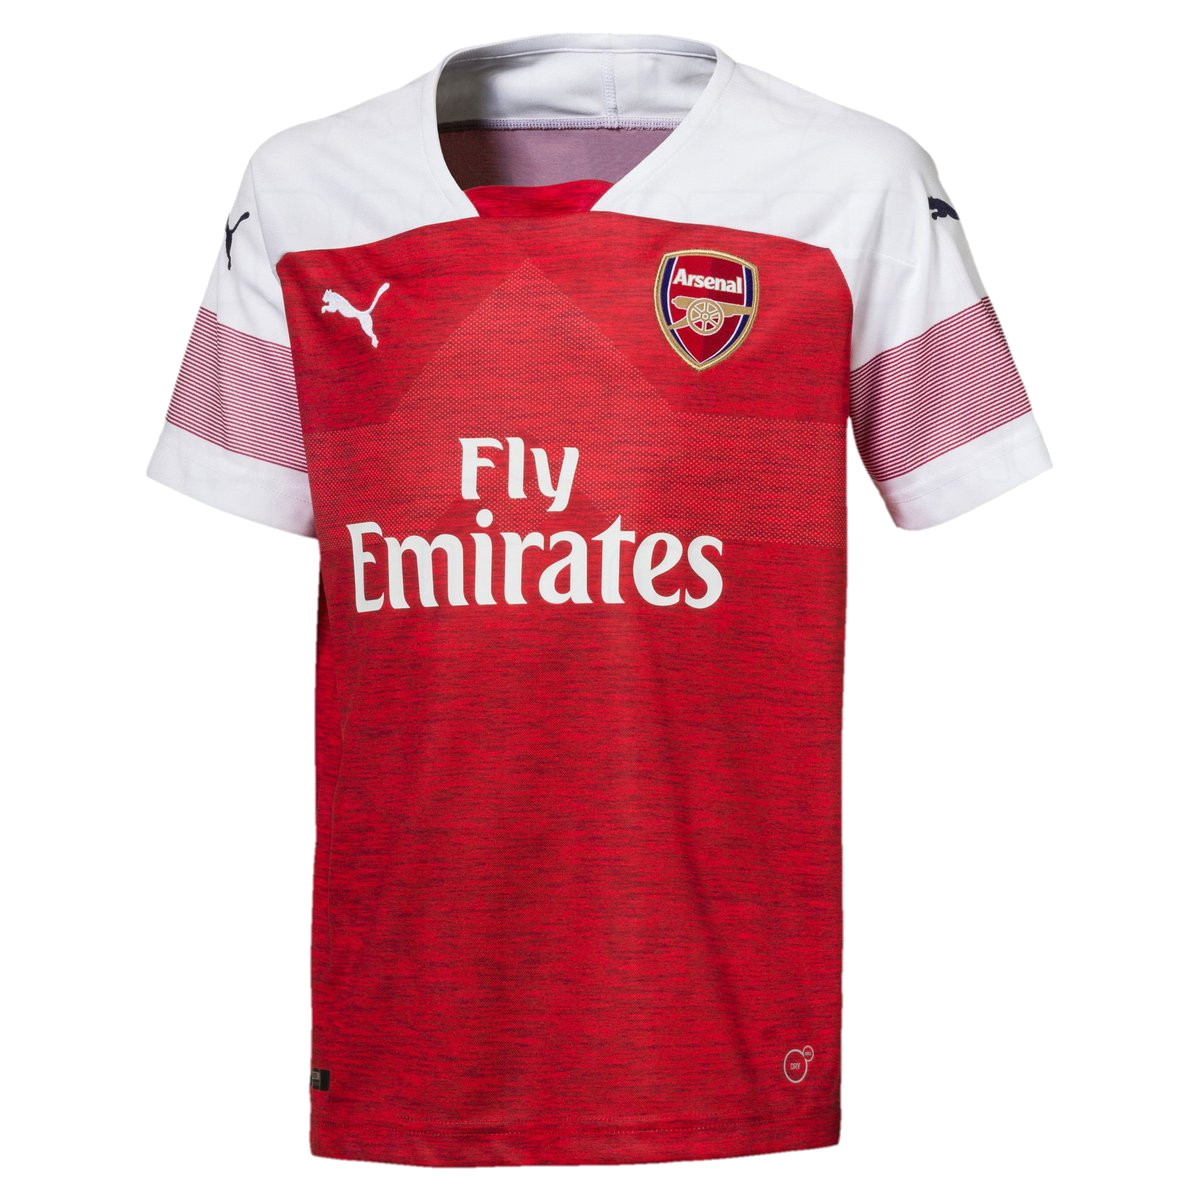 Arsenal 2019 maillot de football domicile Puma